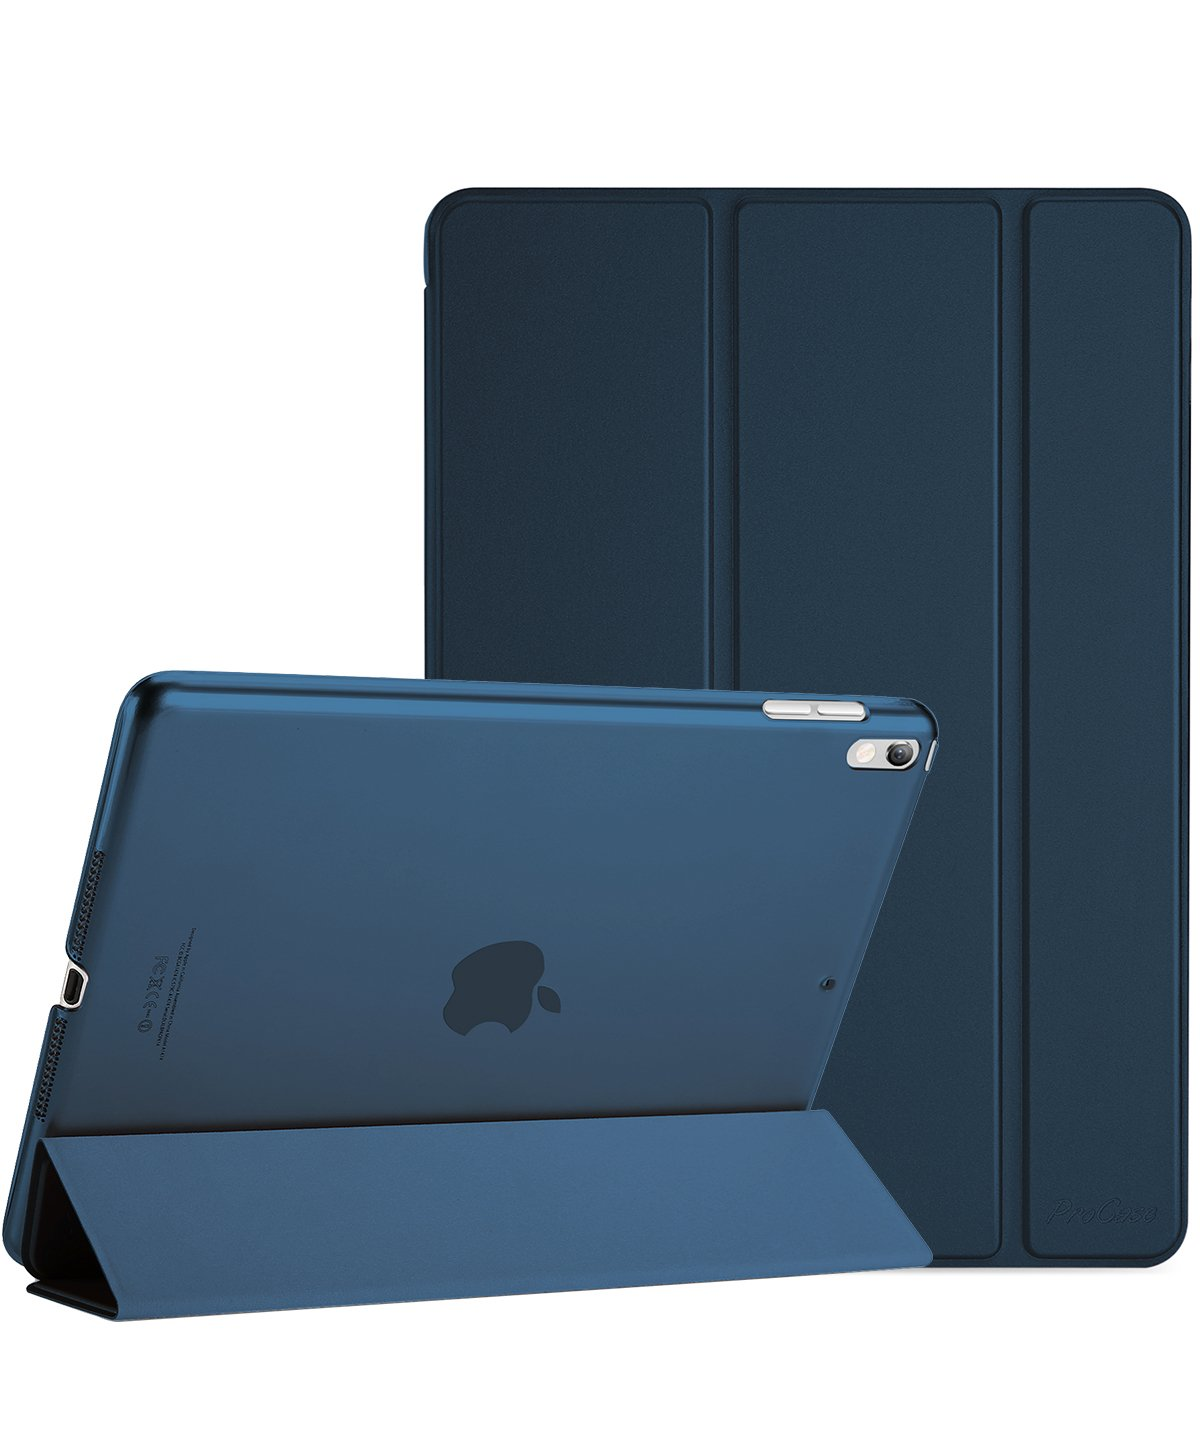 ProCase iPad Pro 10.5 Case 2017, Ultra Slim Lightweight Stand Smart Case Shell with Translucent Frosted Back Cover for Apple iPad Pro 10.5-Inch –Navy Blue by ProCase